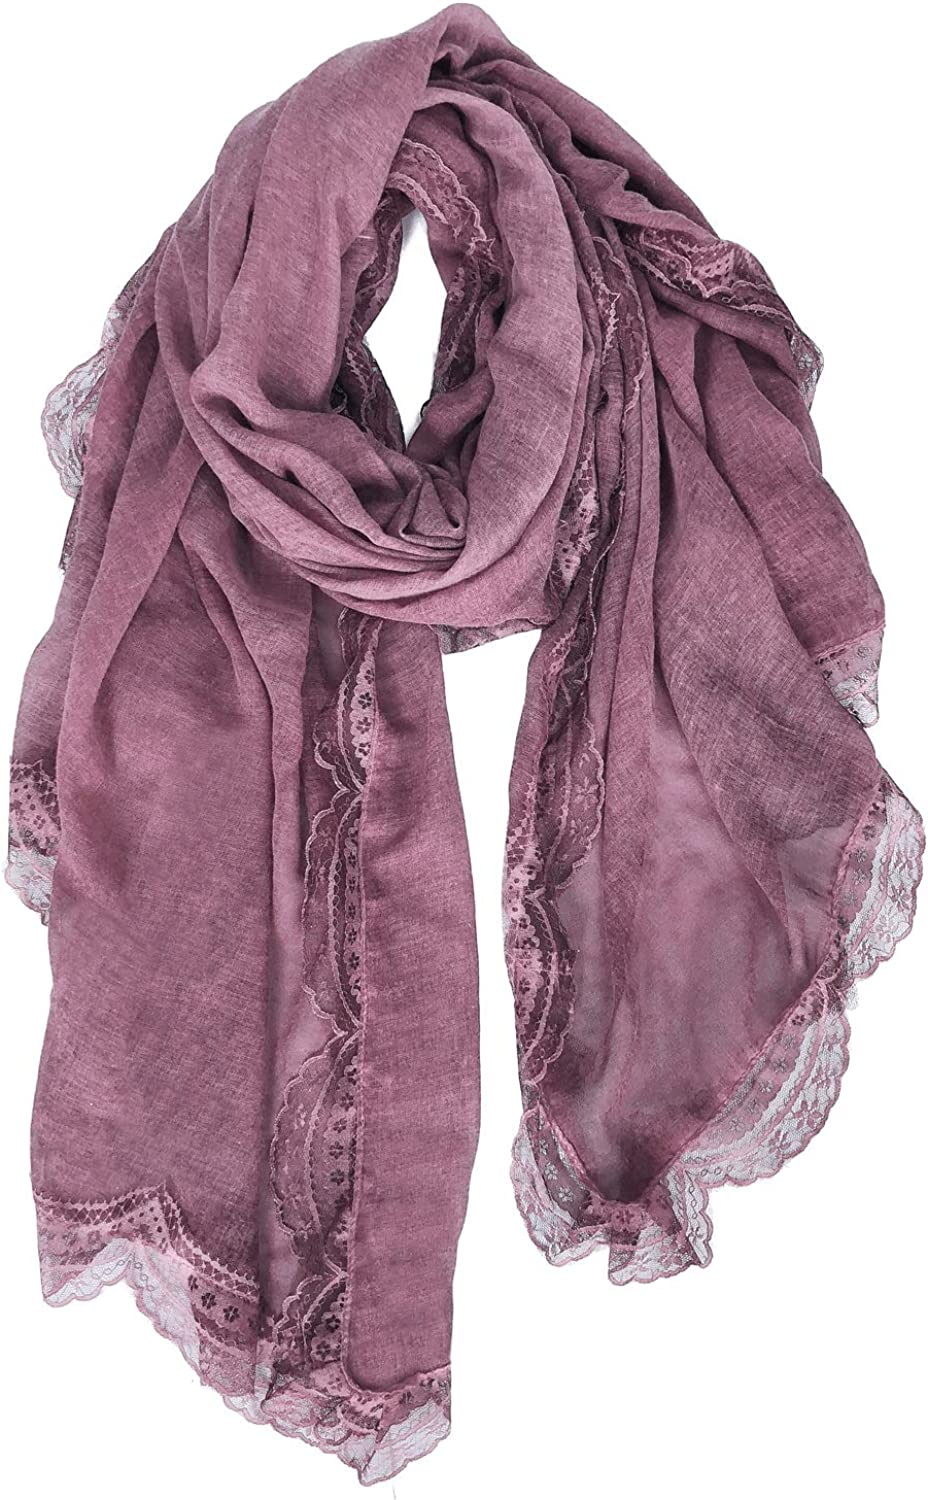 GERINLY Large Cotton Blanket Scarfs for Women Lace Design Lightweight Scarves and Wraps